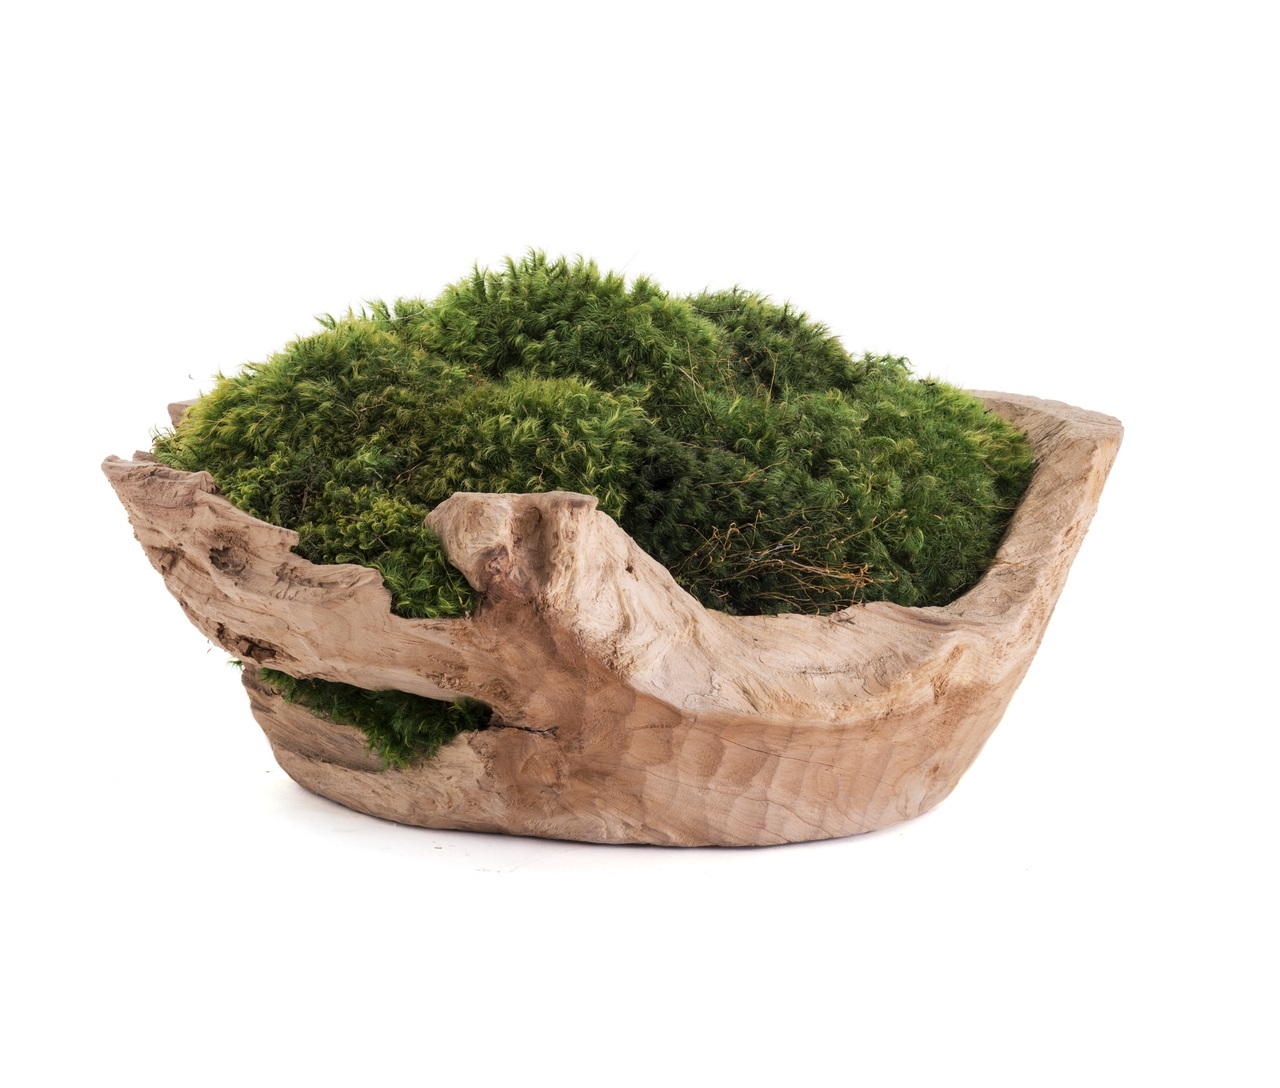 Moss in a natural wood bowl